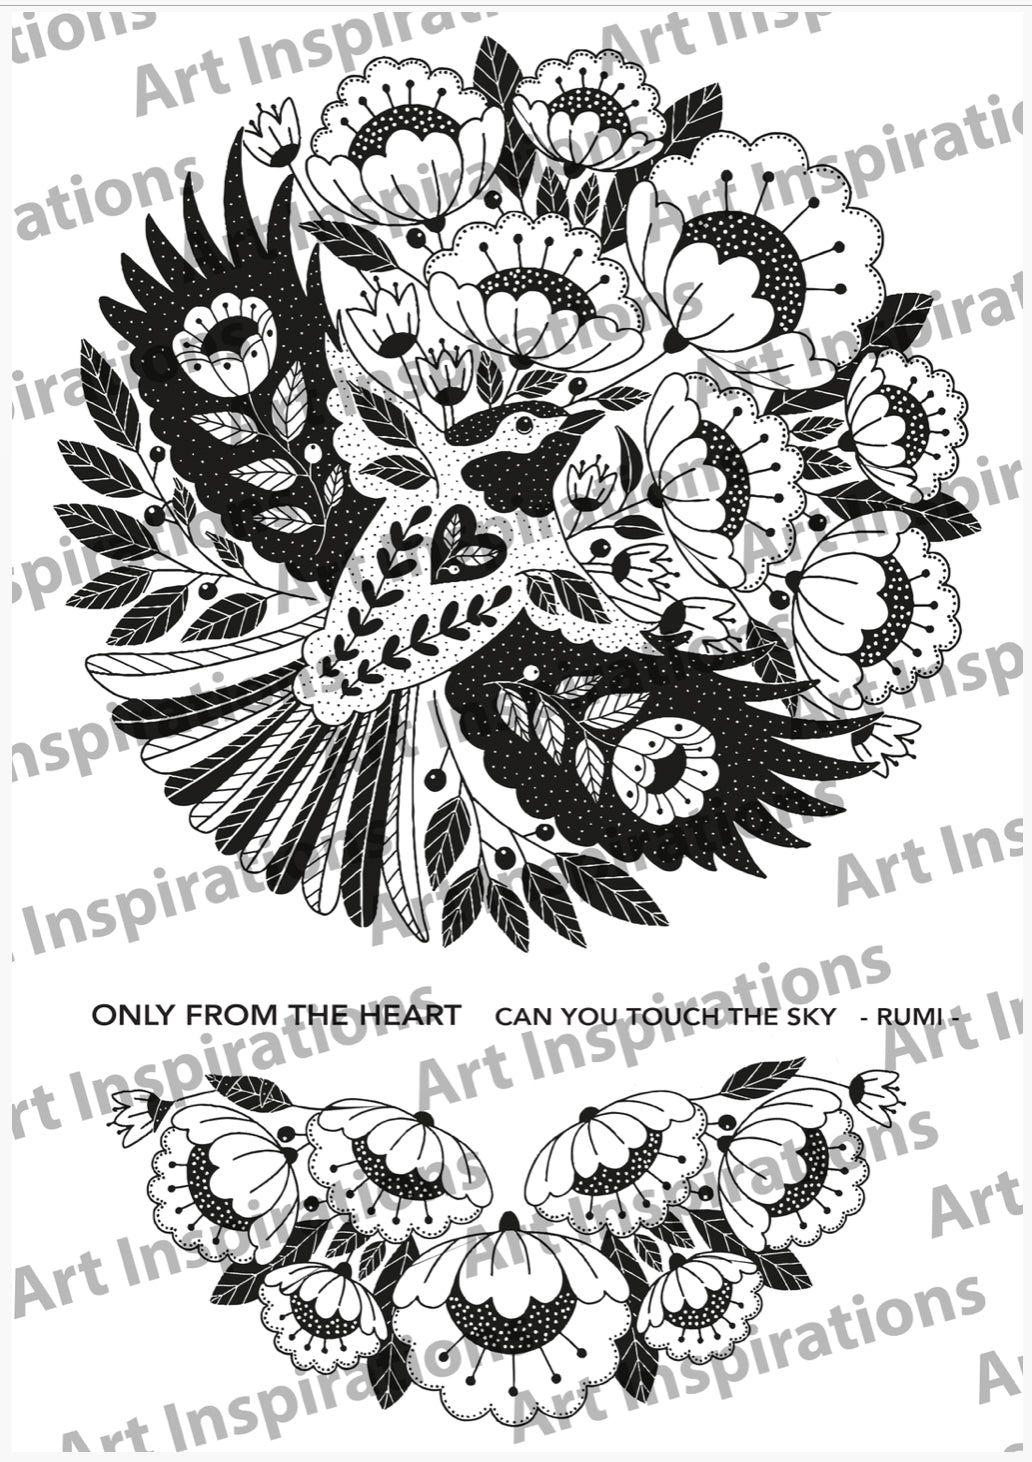 Art Inspirations by Wensdi Made A5 Clear Stamps -  Only From The Heart - 3 Stamps